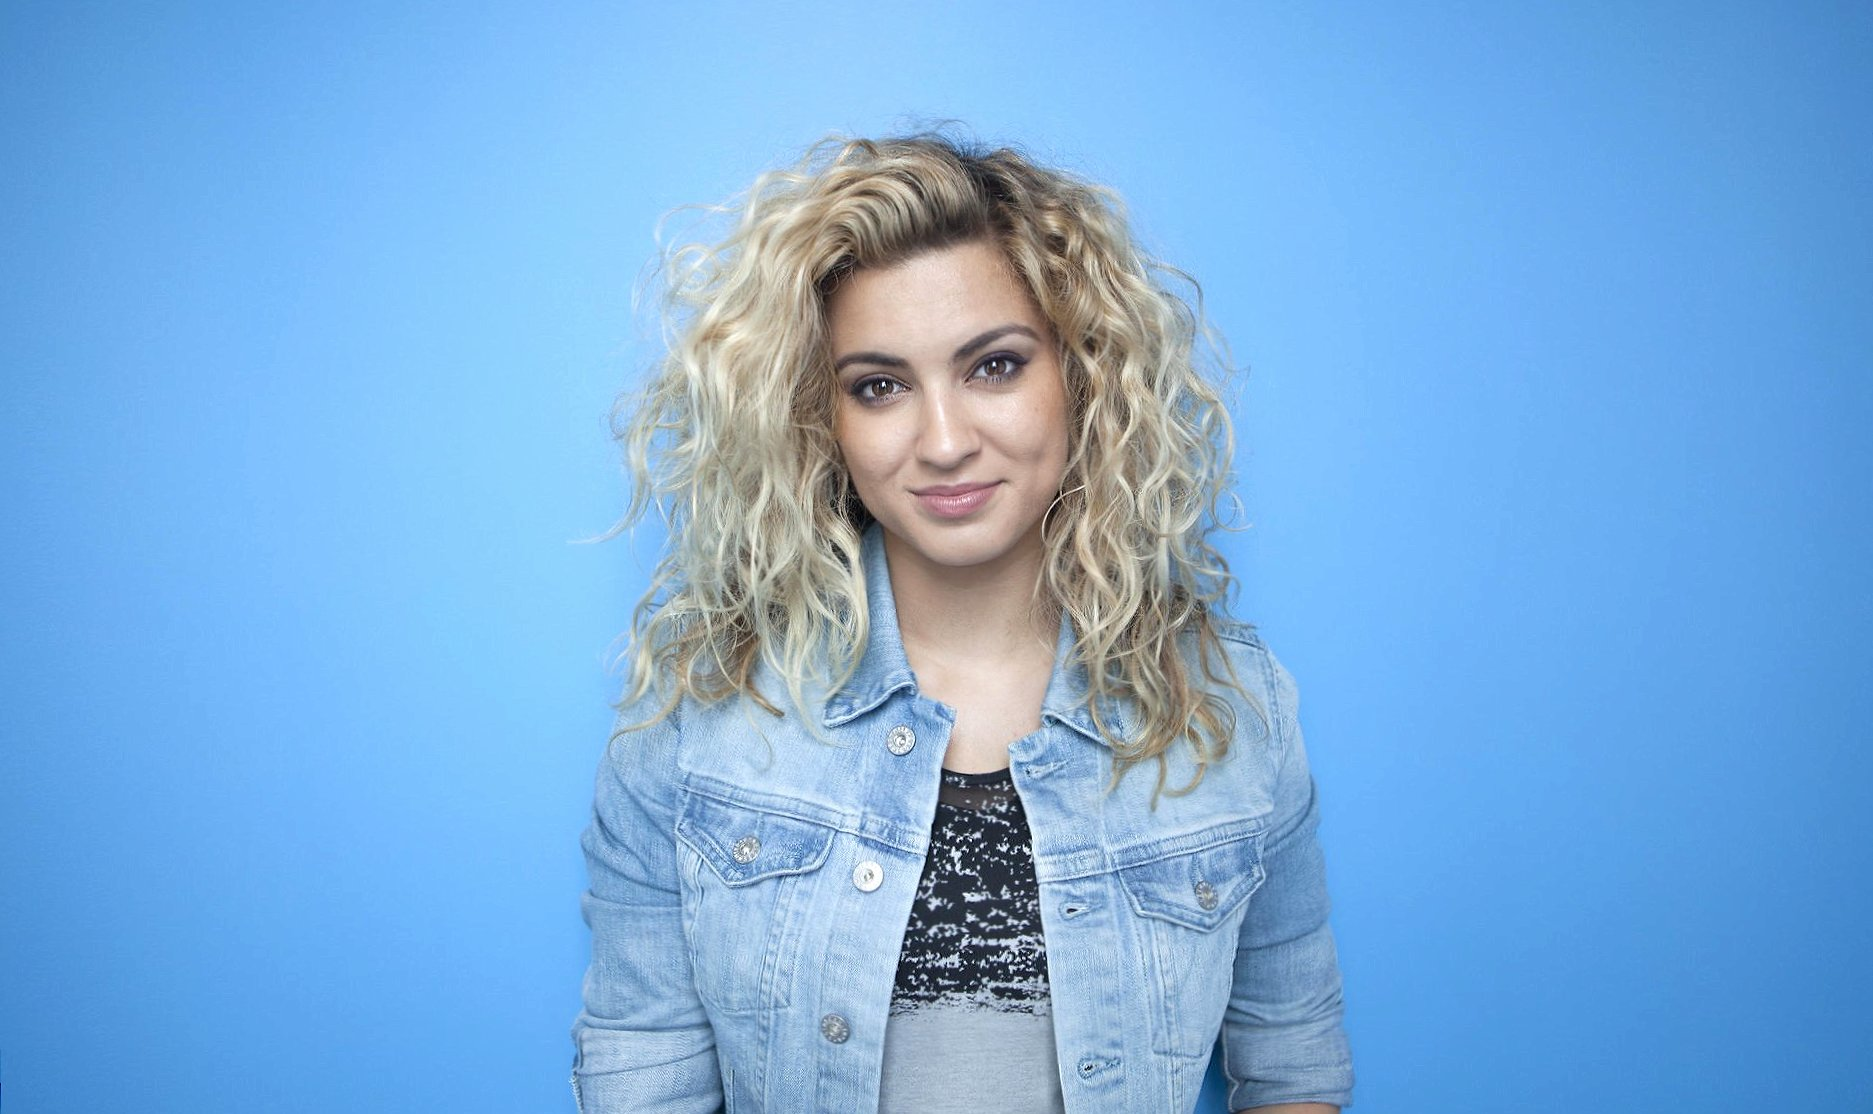 Tori Kelly at 2048 x 2048 iPad size wallpapers HD quality